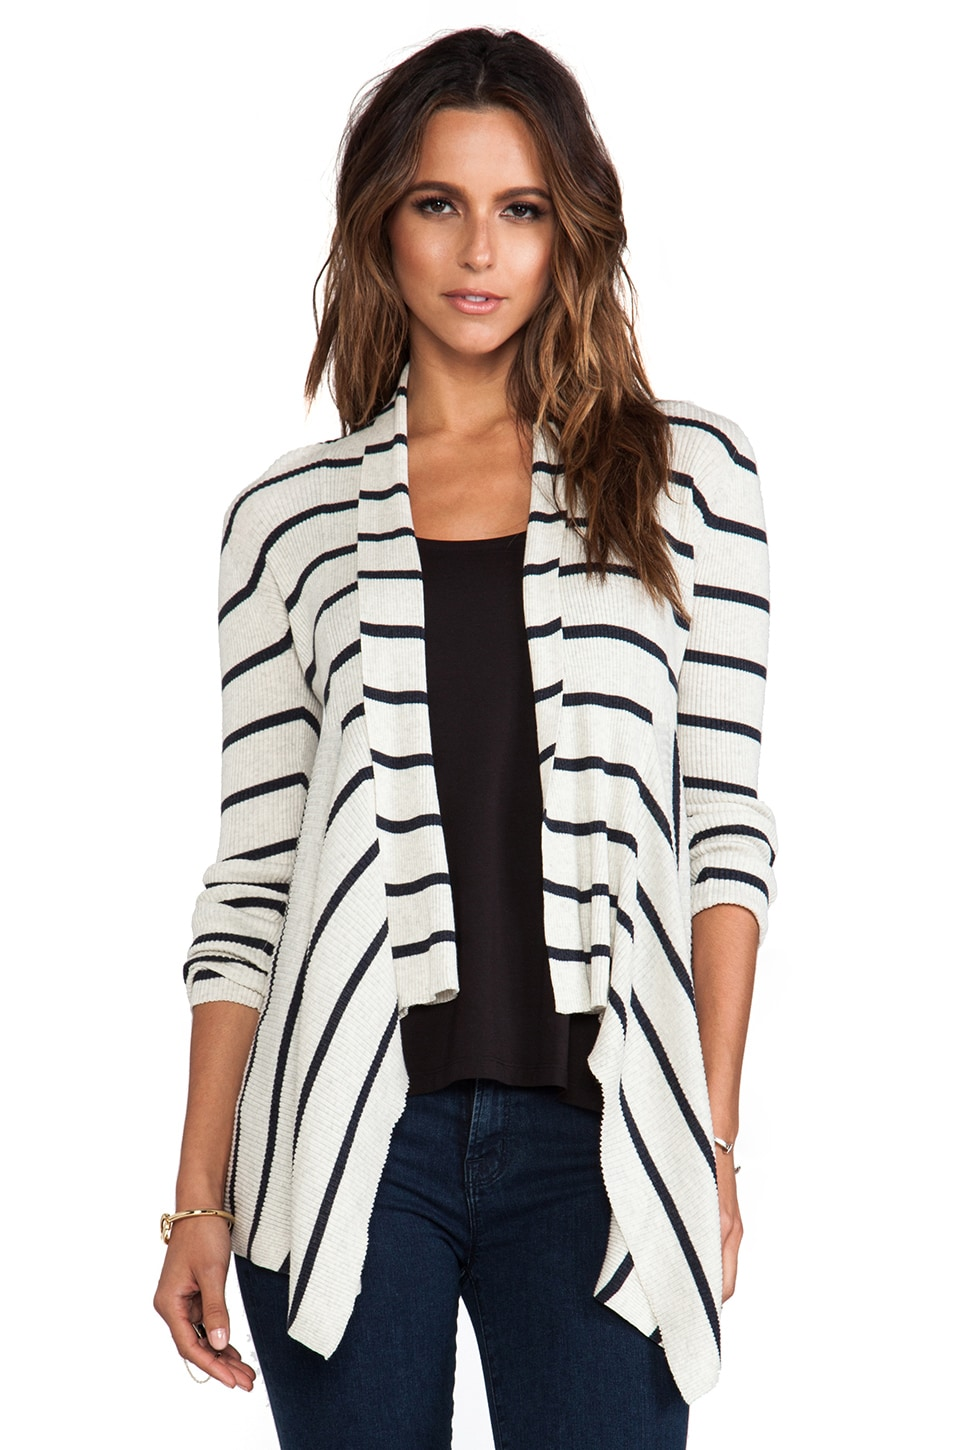 Autumn Cashmere Striped Ribbed Drape Cardigan in Hemp & Dungaree